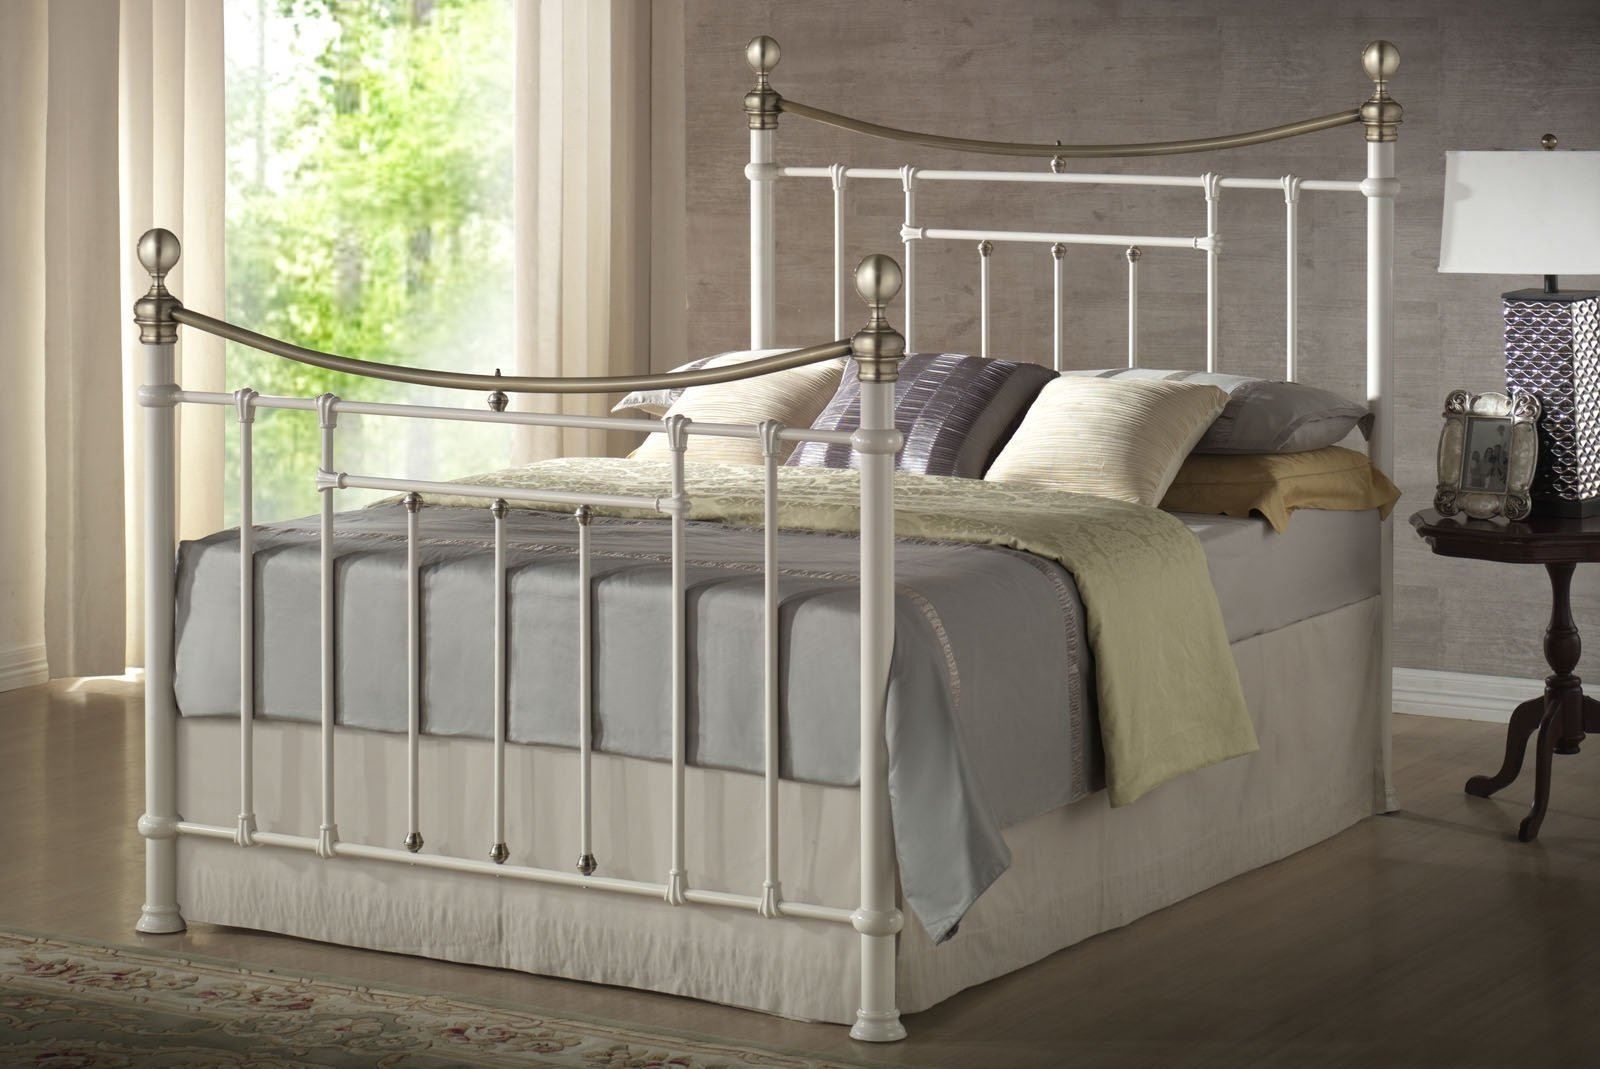 Birlea Bronte Metal Victorian Cream & Brass Bed Frame 150CM 5FT 5'0''